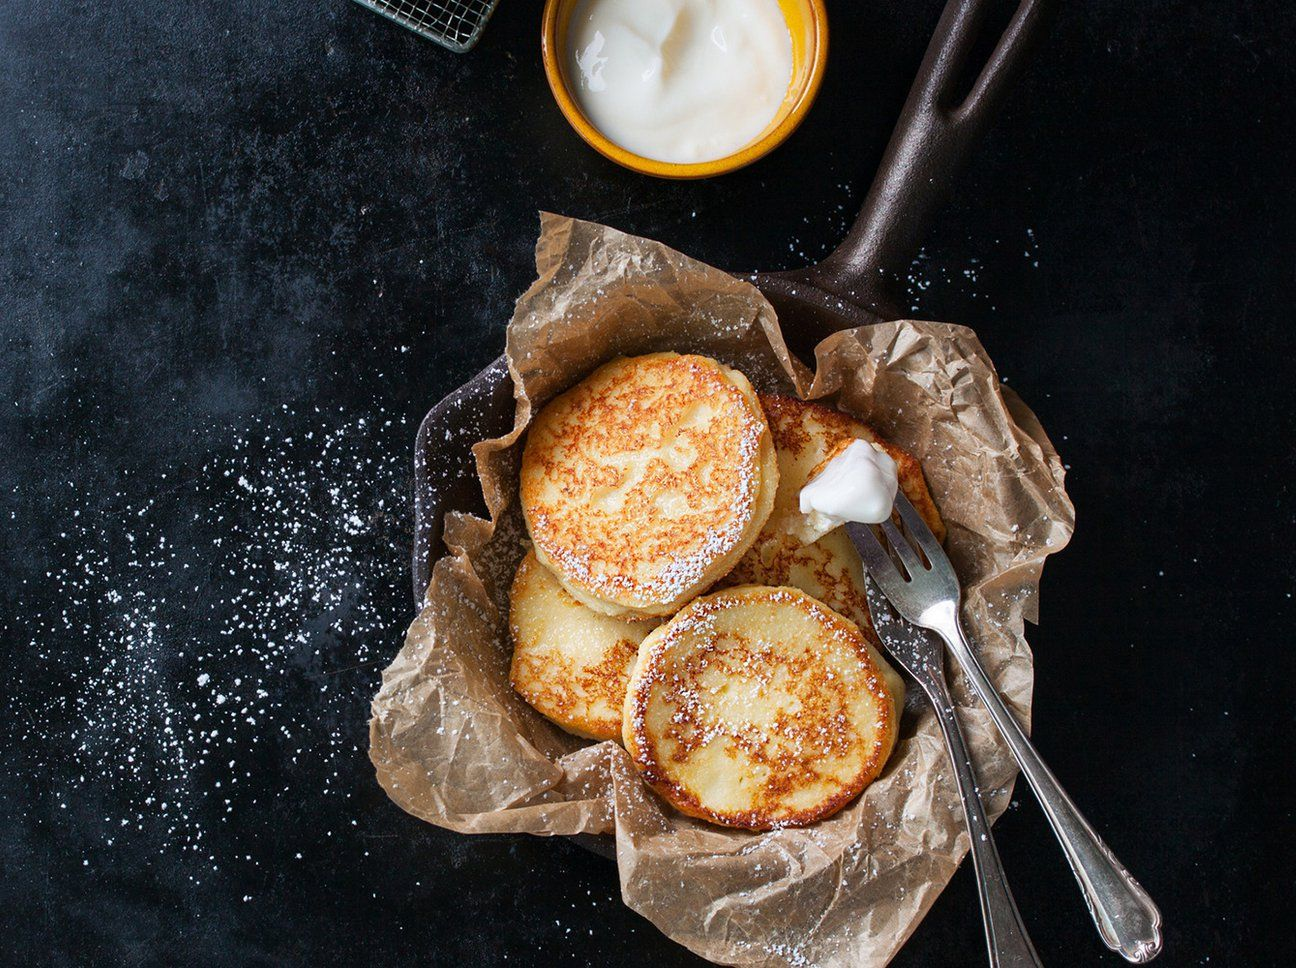 Photo of Recipe: Sugar Free Pancakes from Cottage Cheese and Oatmeal | freundin.de